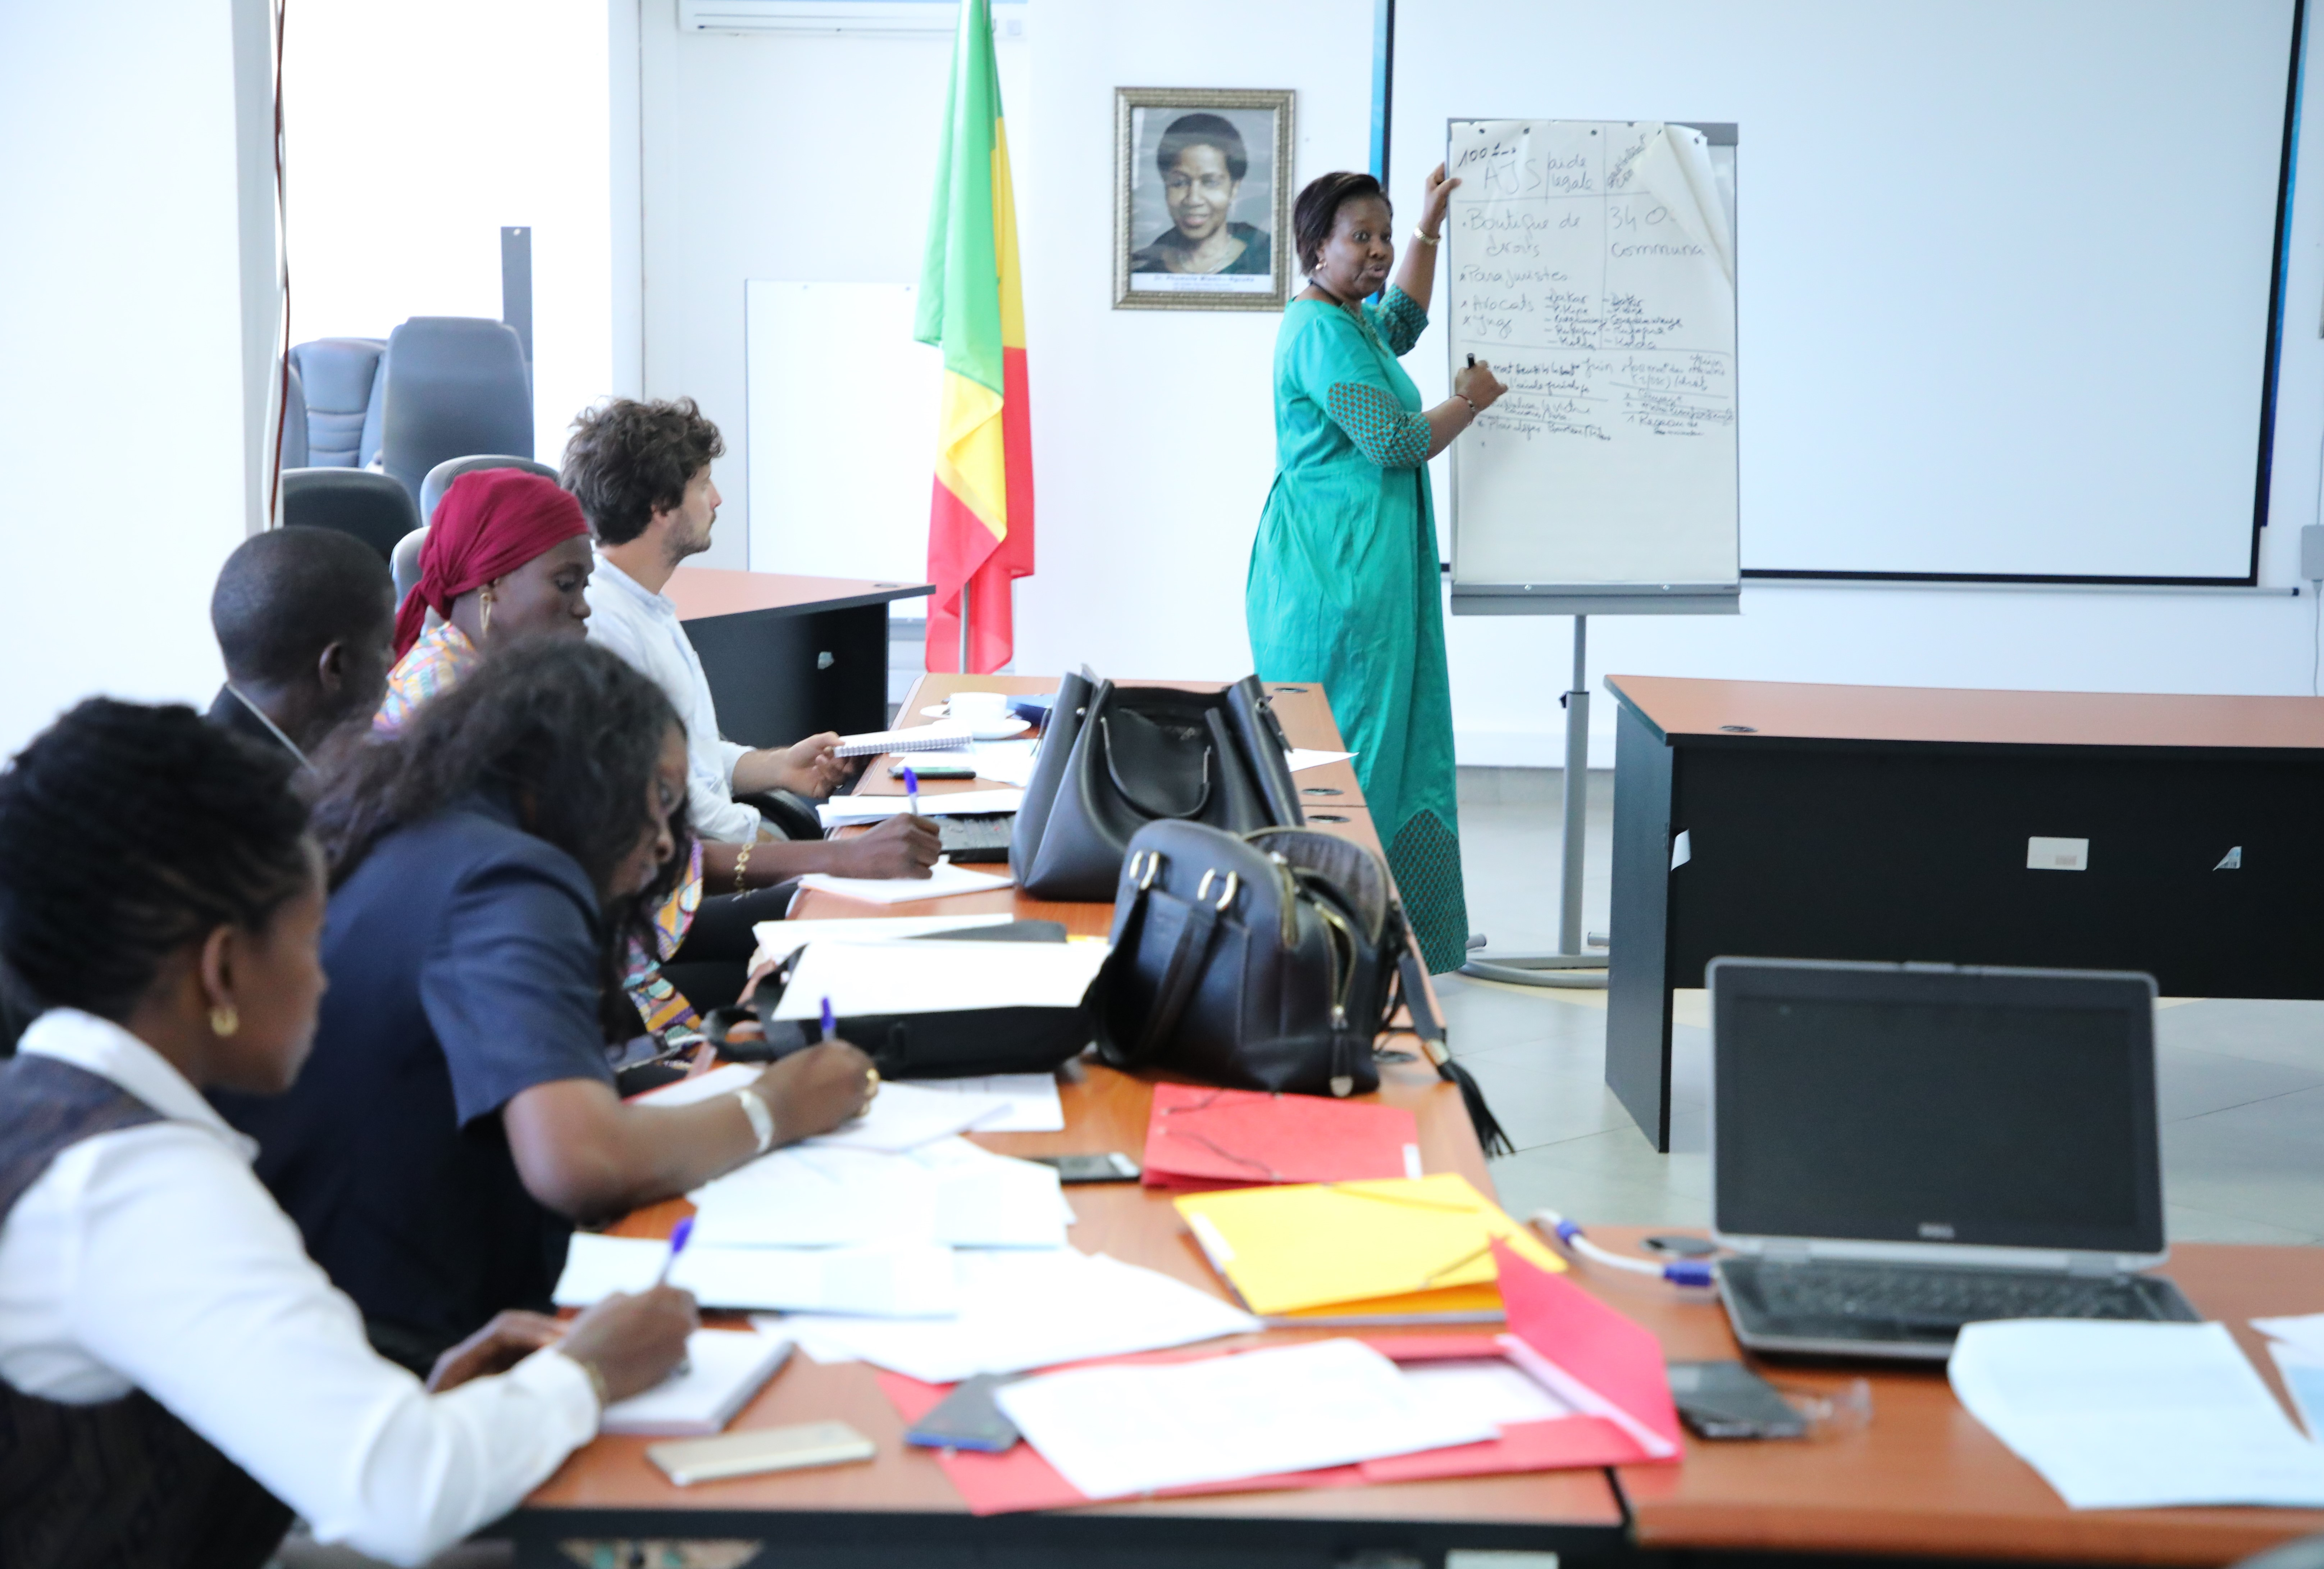 UN Women, UNODC and OHCHR strive to improve women's access to legal aid in Senegal